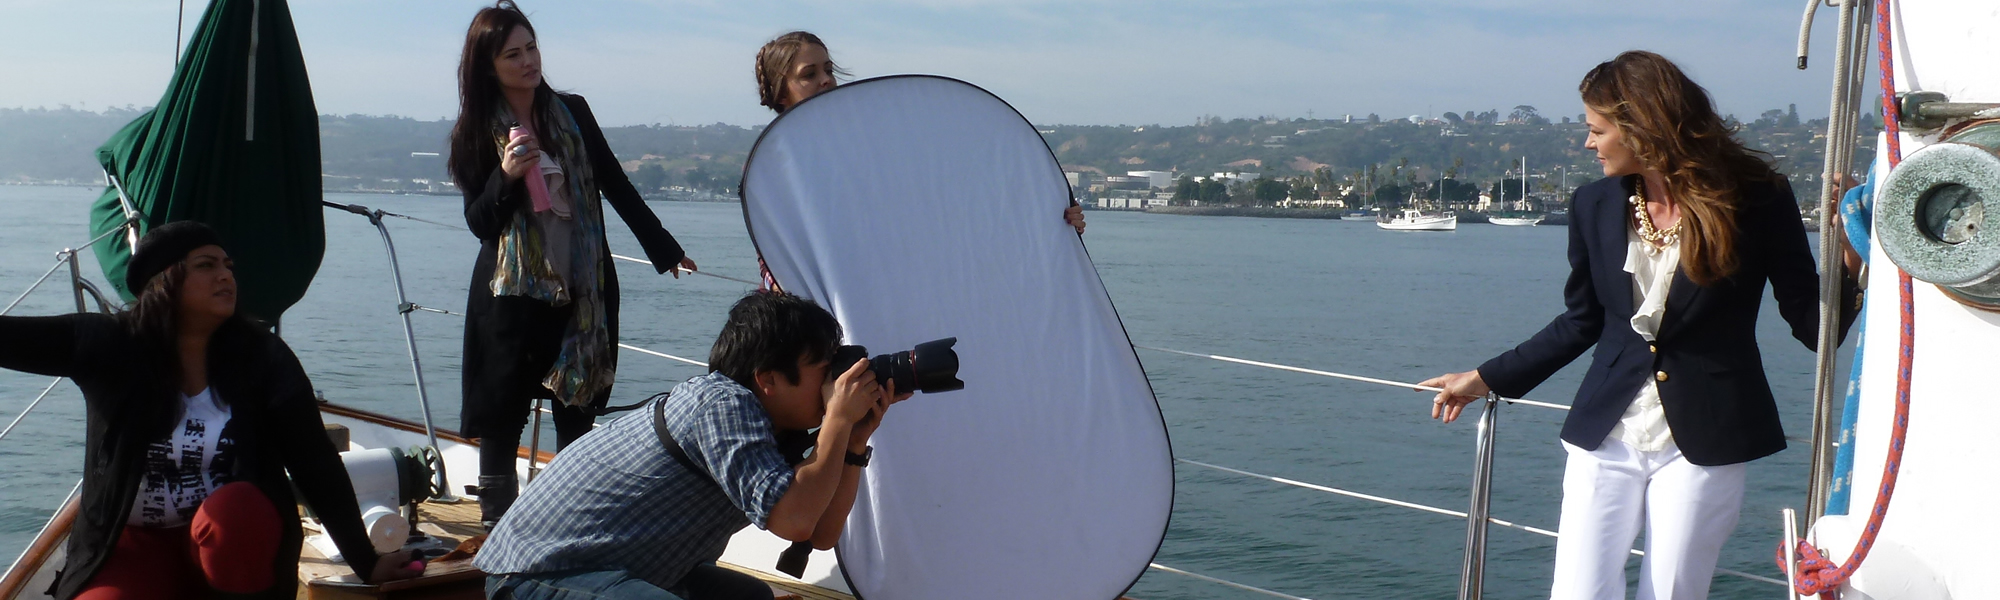 photo_shoot_at_sea